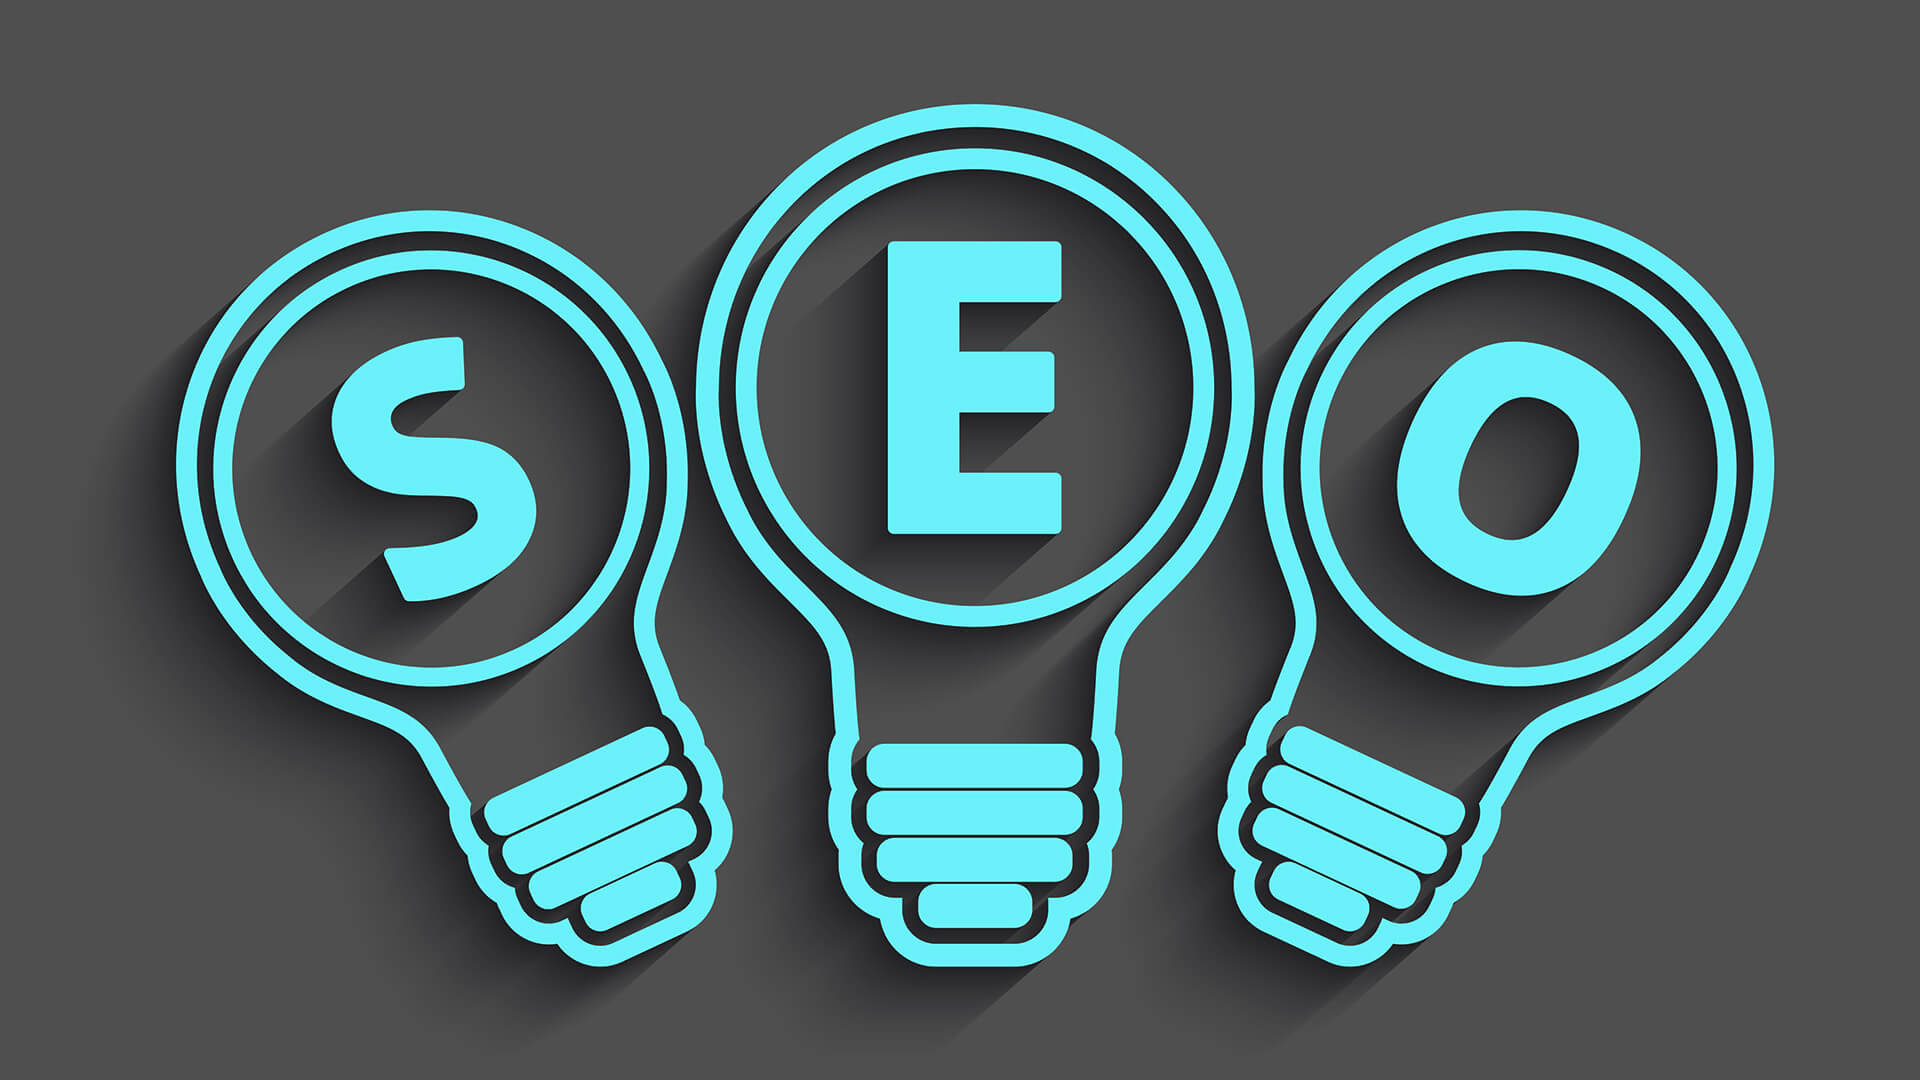 Let us first speak about SEO and keep it in the limelight